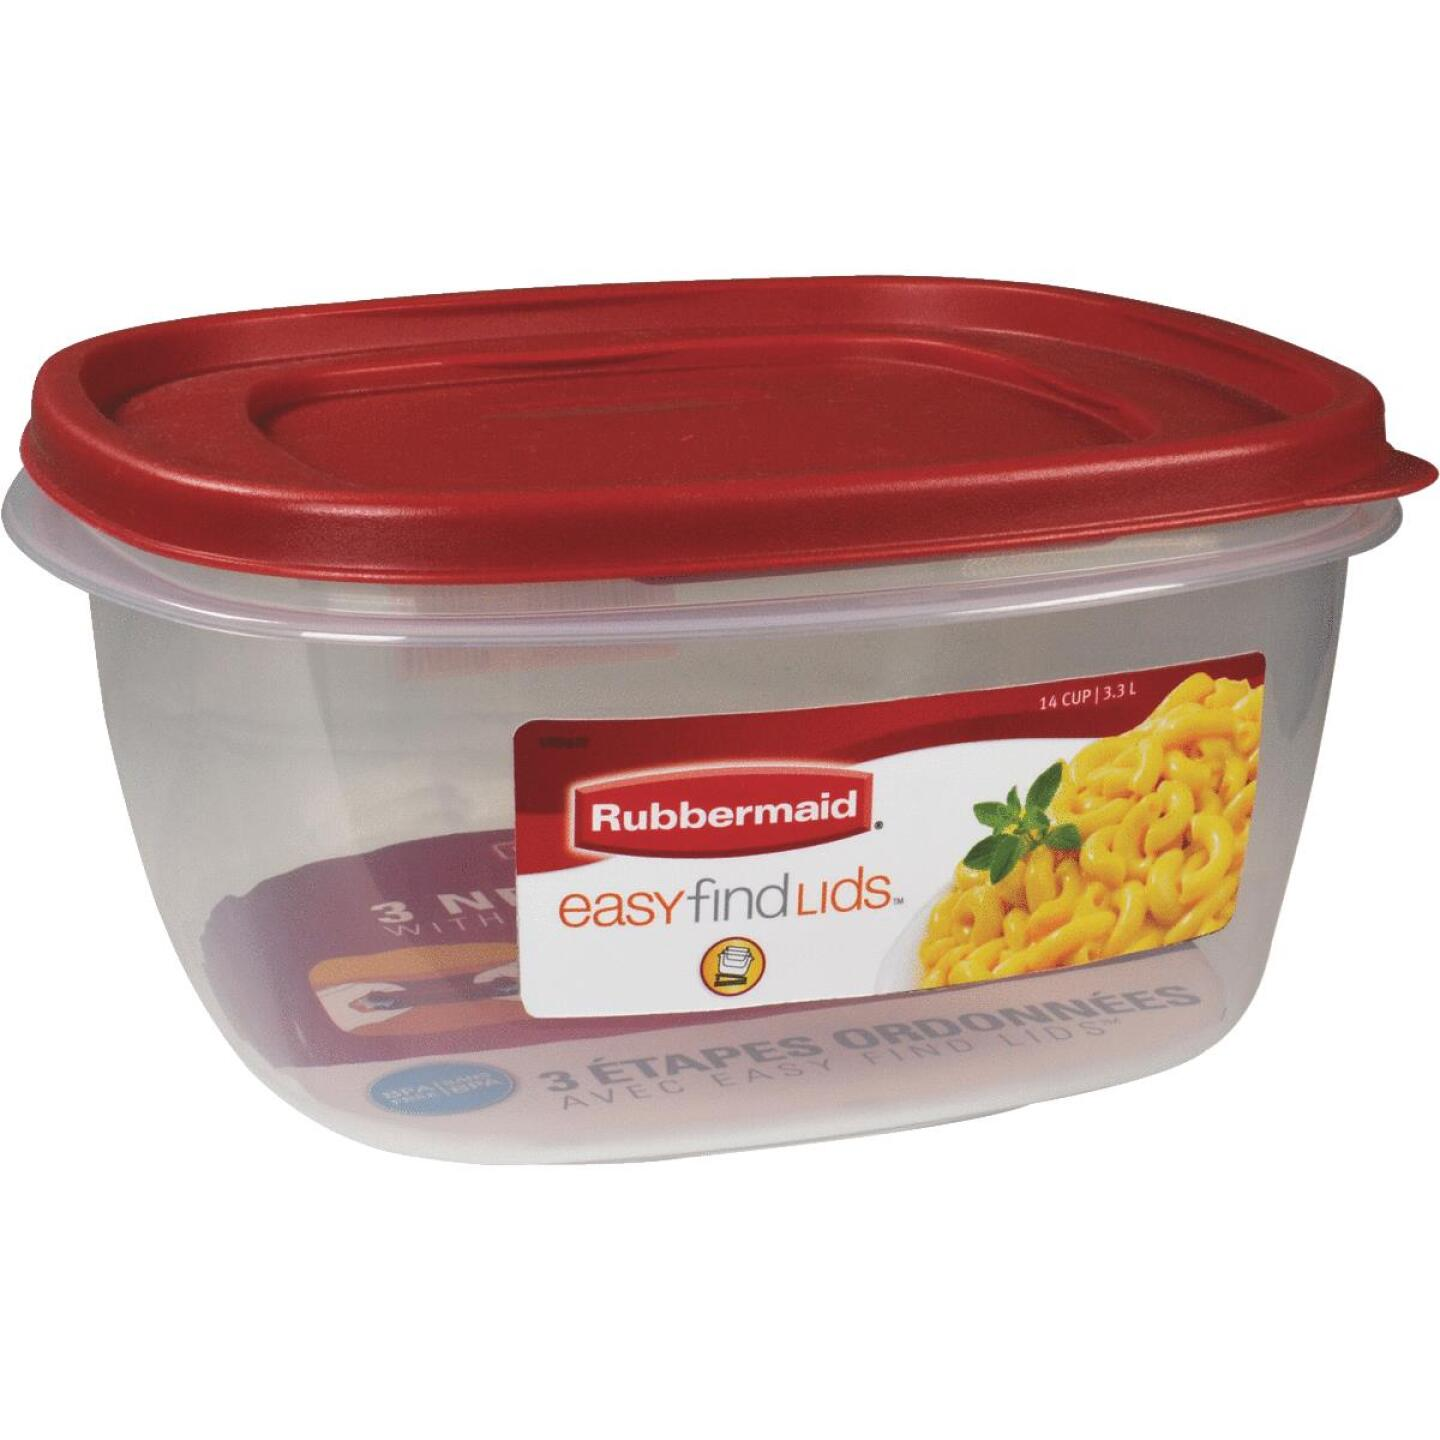 Rubbermaid Easy Find Lids 14 C. Clear Square Food Storage Container Image 1